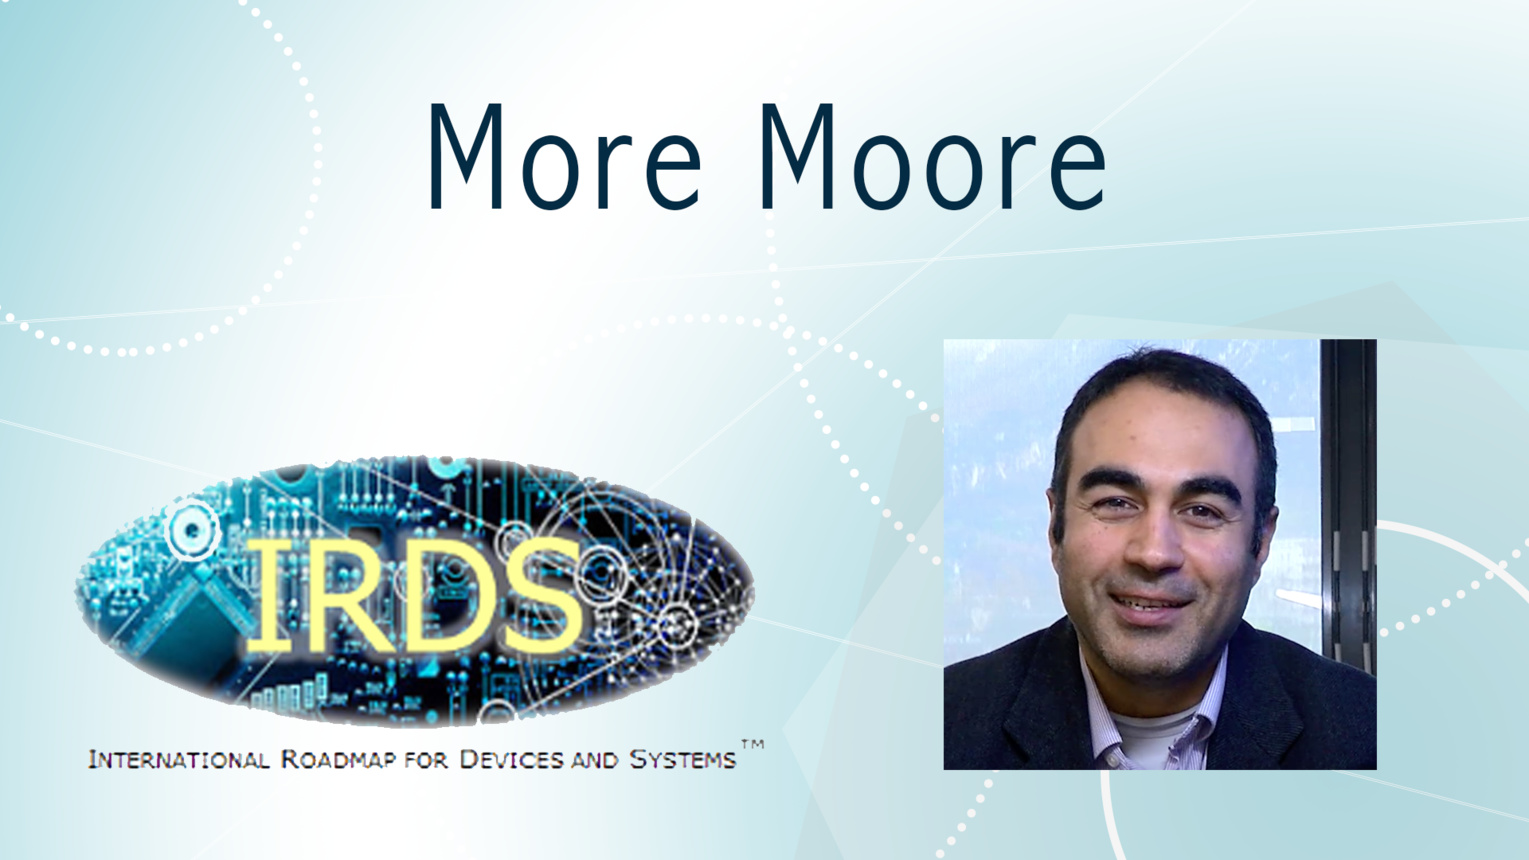 More Moore: International Roadmap for Devices and Systems